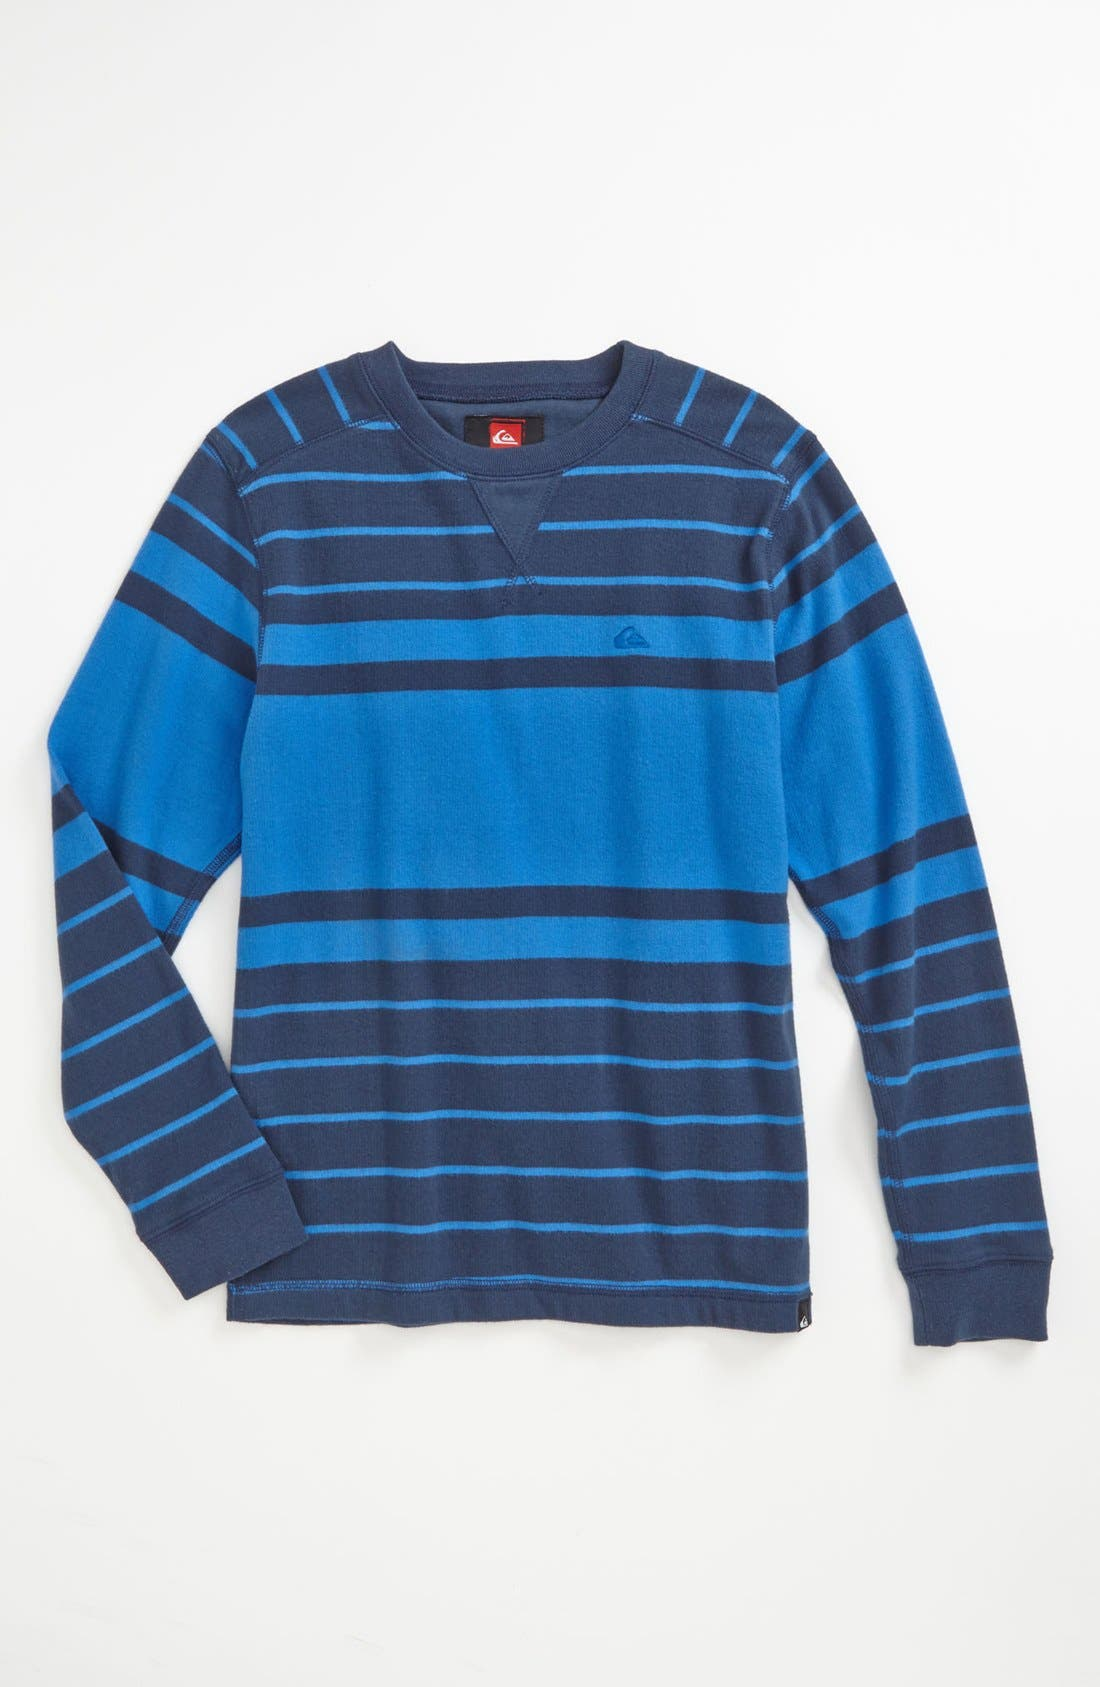 Main Image - Quiksilver 'Snit' Long Sleeve T-Shirt (Little Boys)